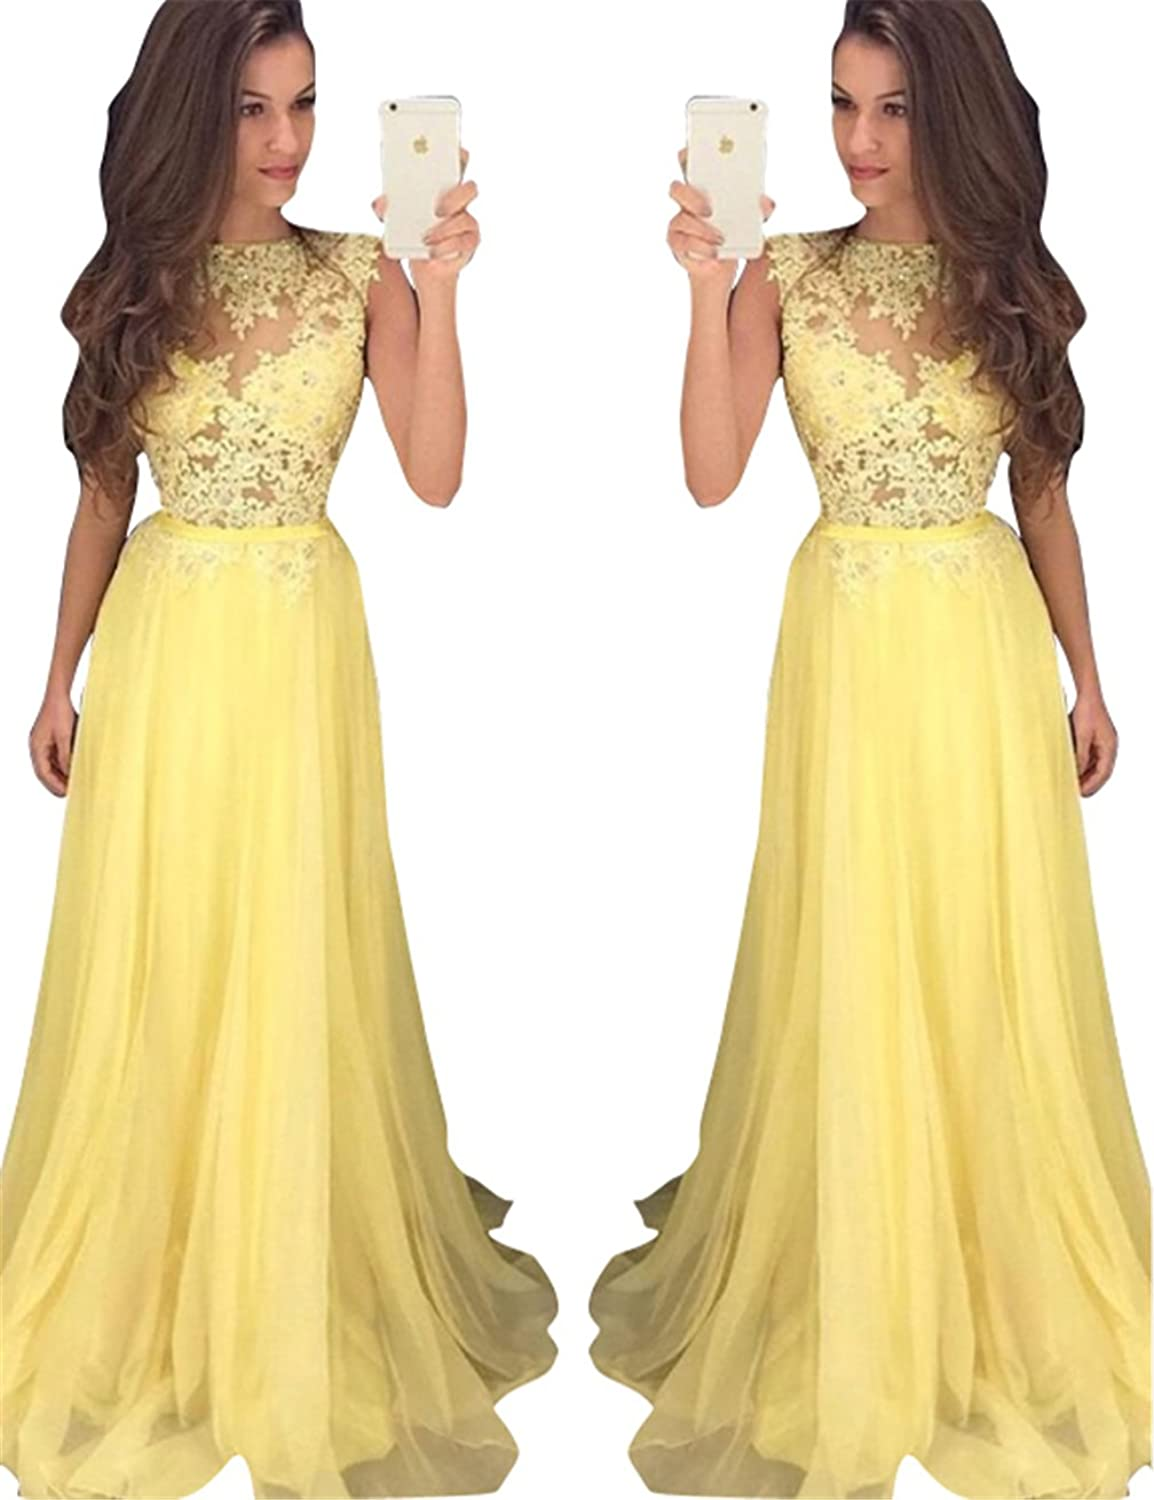 Changjie Women's Sleeveless Prom Dresses Lace Applique Formal Evening Party Gown